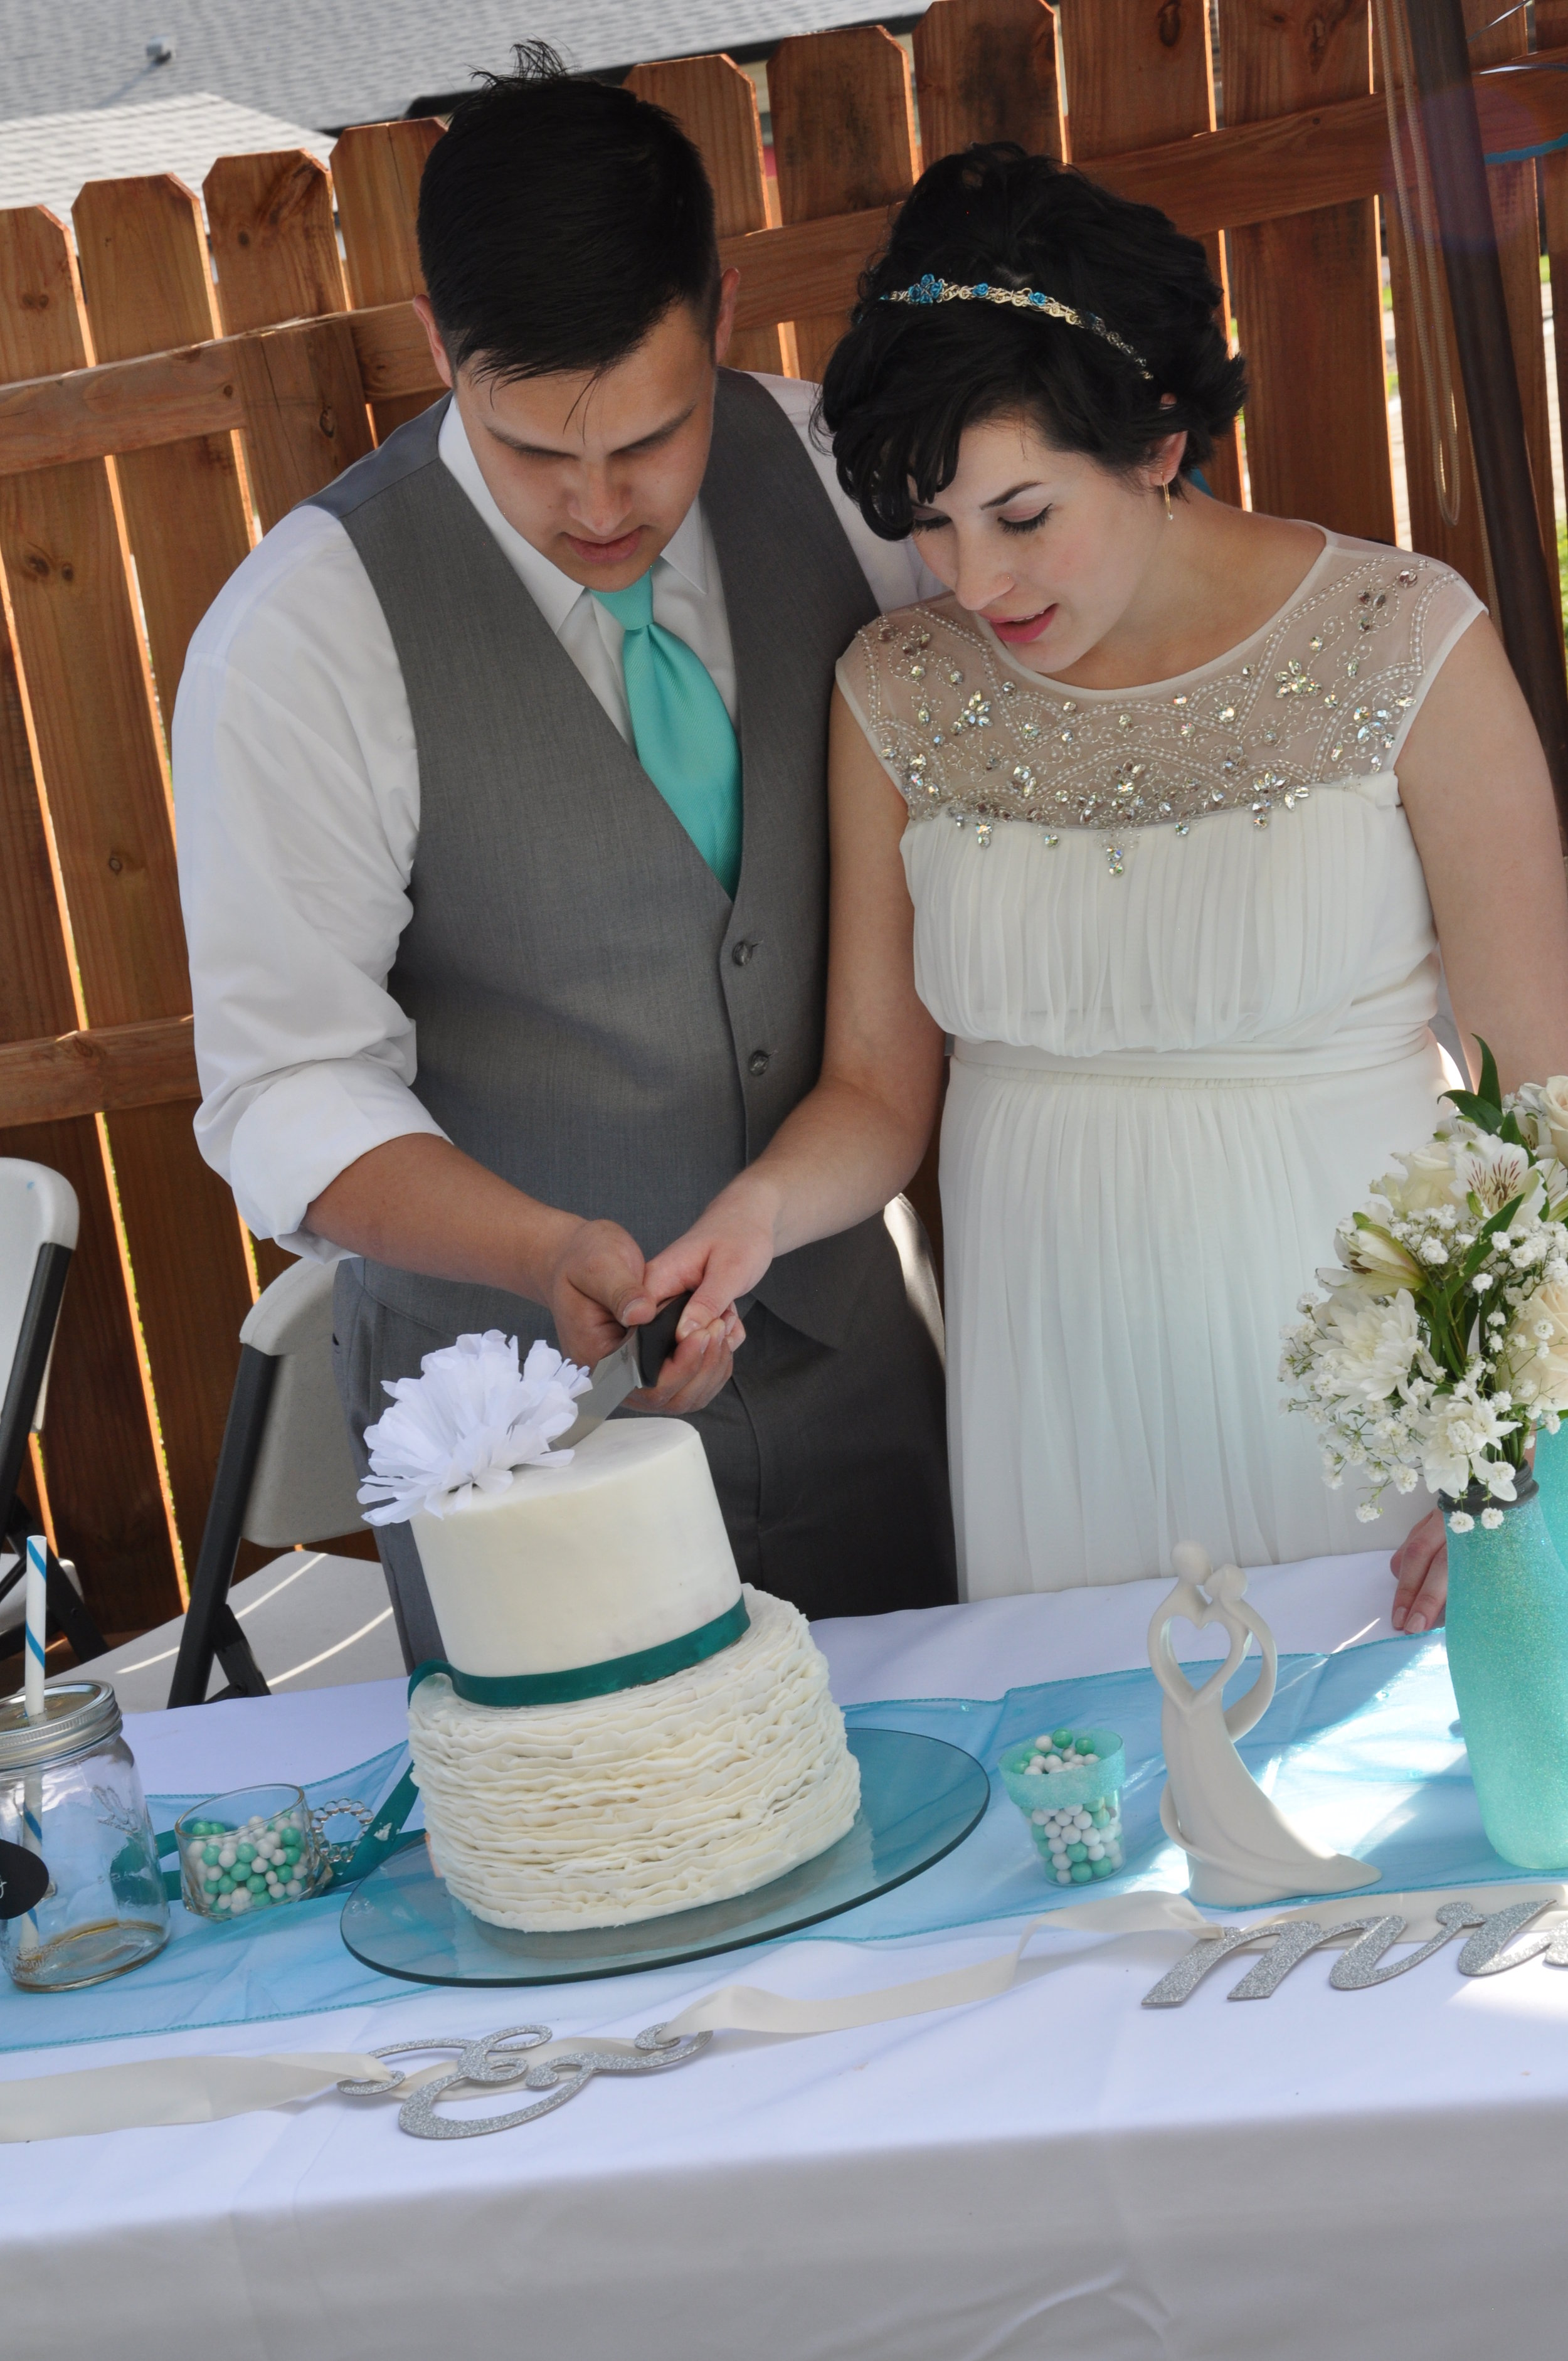 We cut our cake with one of Jeremy's favorite knives.